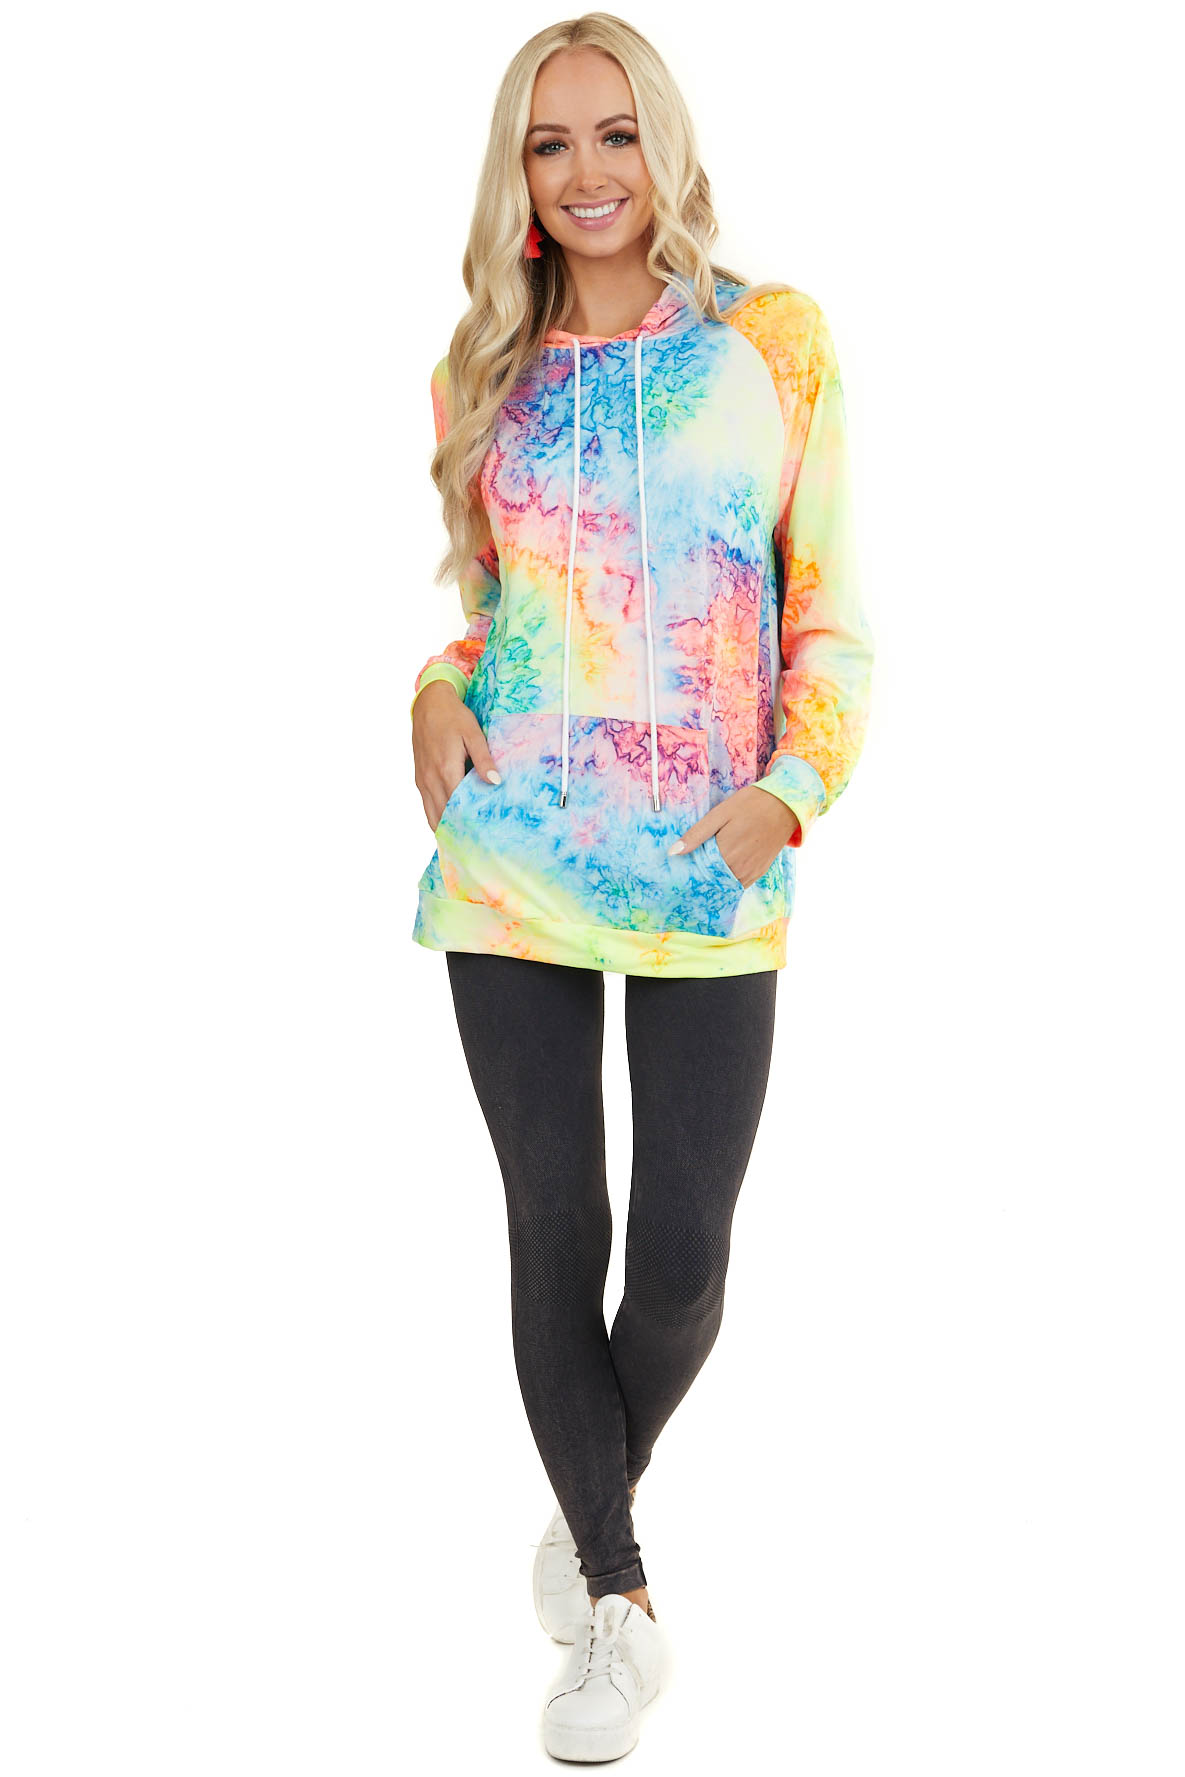 Rainbow Tie Dye Jersey Knit Hooded Top with Long Sleeves